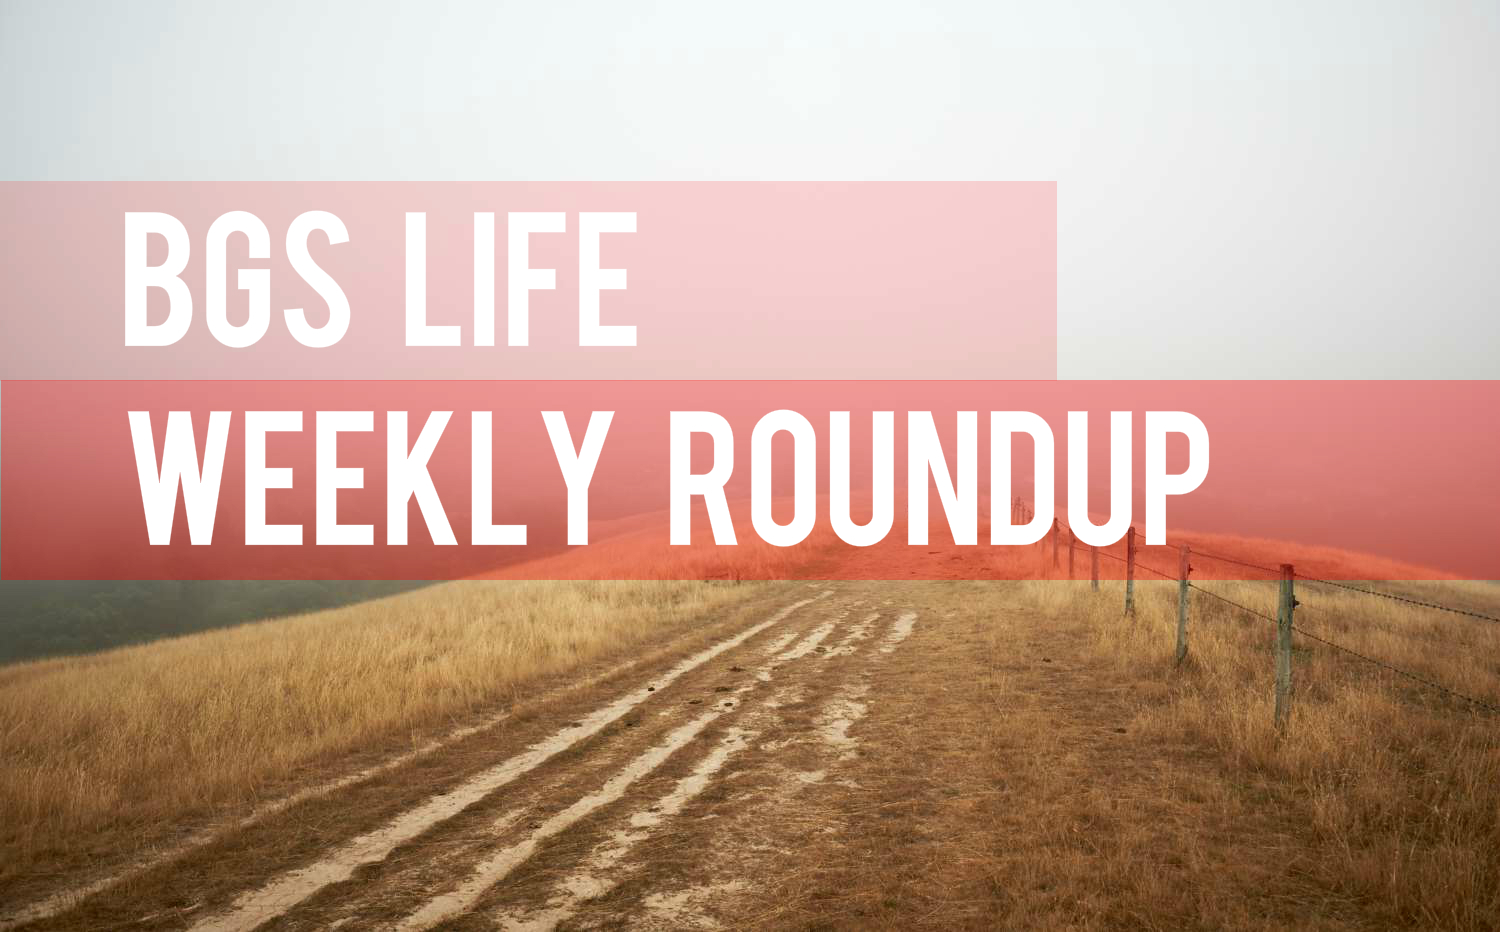 The BGS Life Weekly Roundup: Backyard Art, New Orleans Restaurants, Millennial Foodies and More